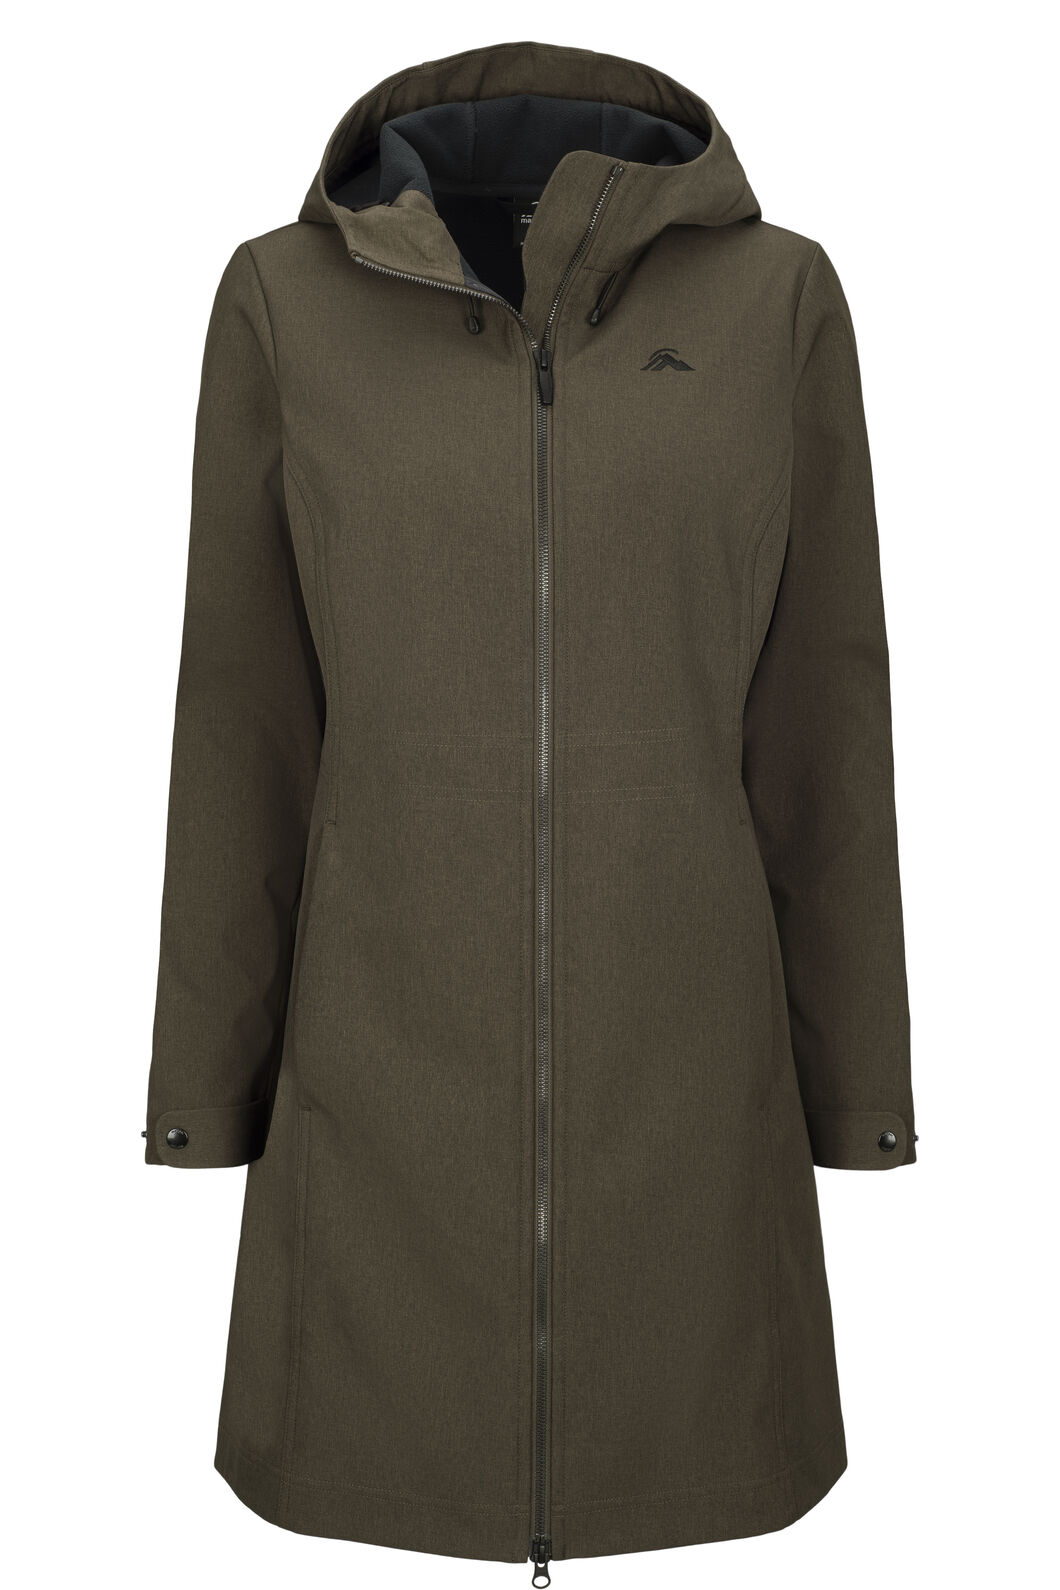 Macpac Chord Softshell Hooded Coat — Women's, Black Olive, hi-res